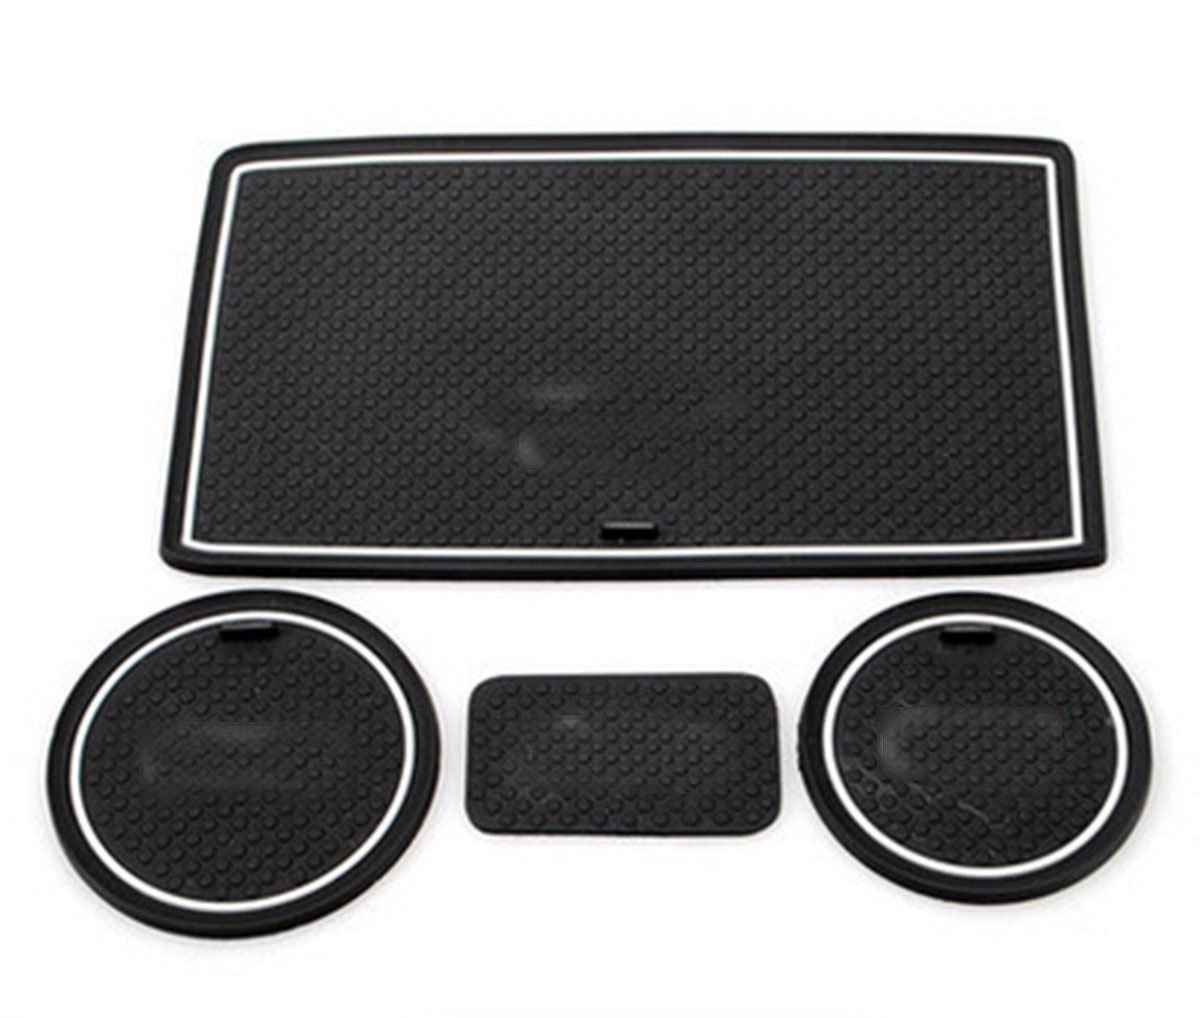 Nicebee 4pcs Non-Slip Mat Door Mat Cup Mat Car Pad for 2011-2017 Jeep Wrangler JK at Automatic Transmission with White Logo by Nicebee